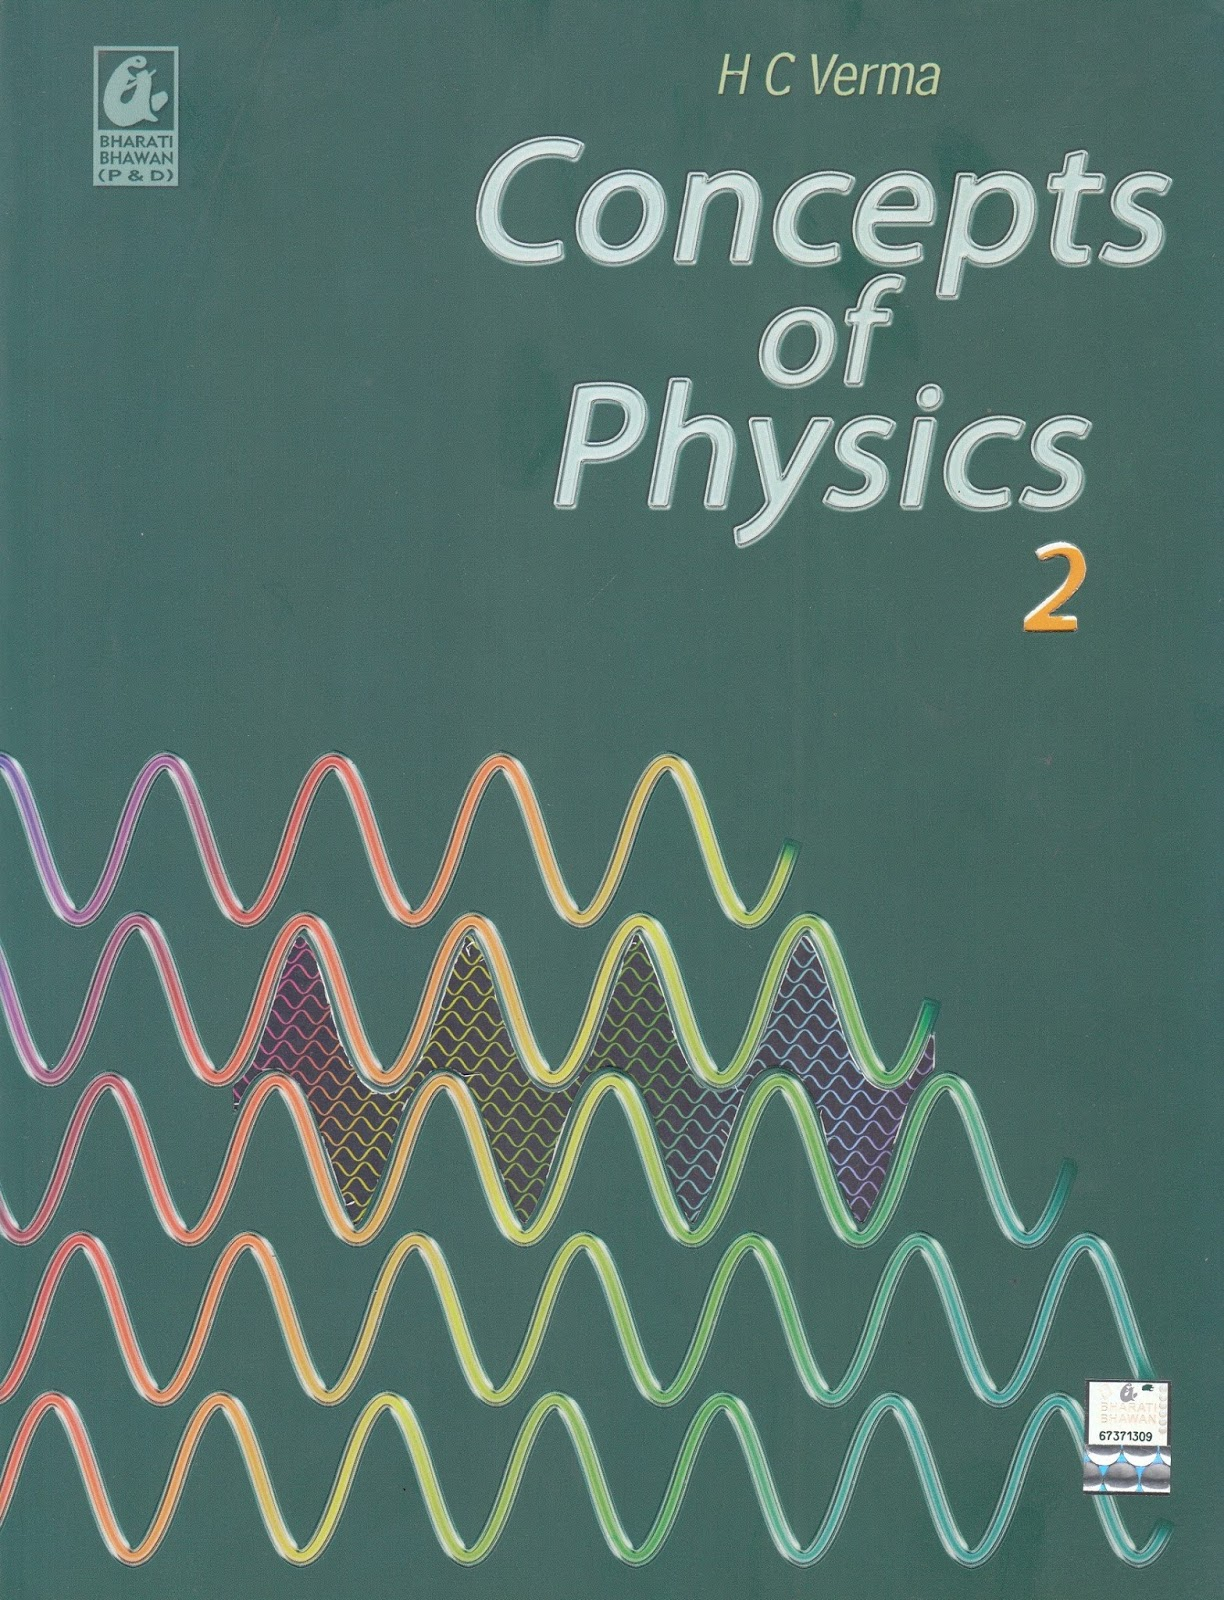 hc verma concepts of physics vol 2 pdf free ebook